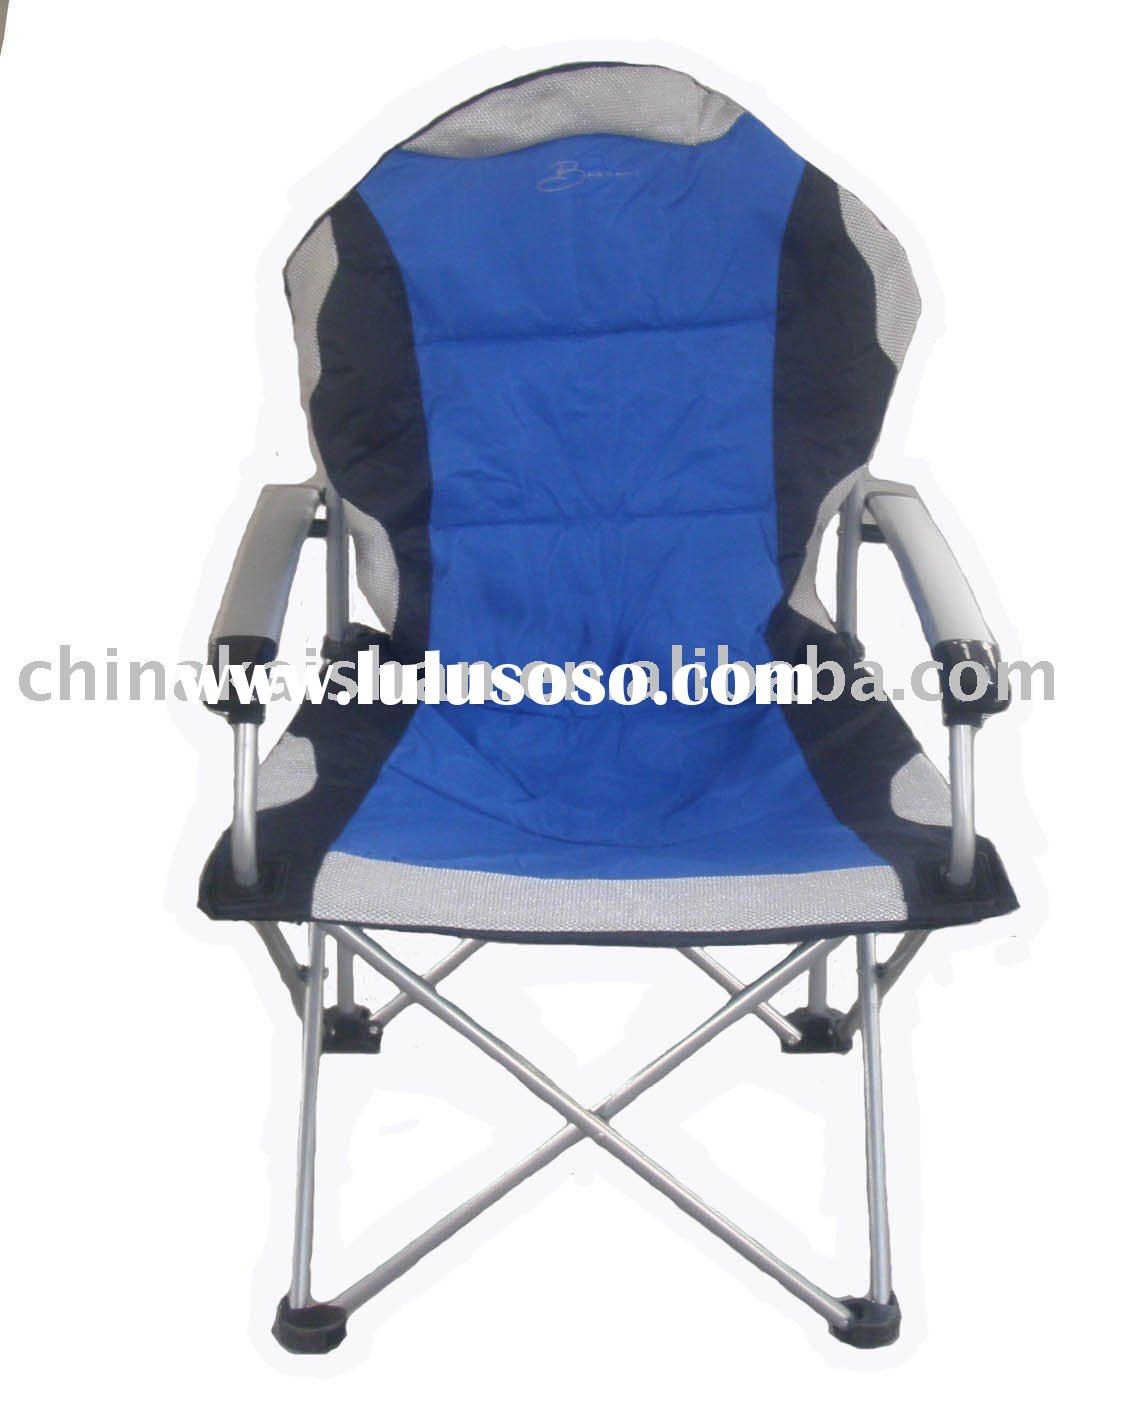 Camping Chairs Aluminum Frame For Sale Price China